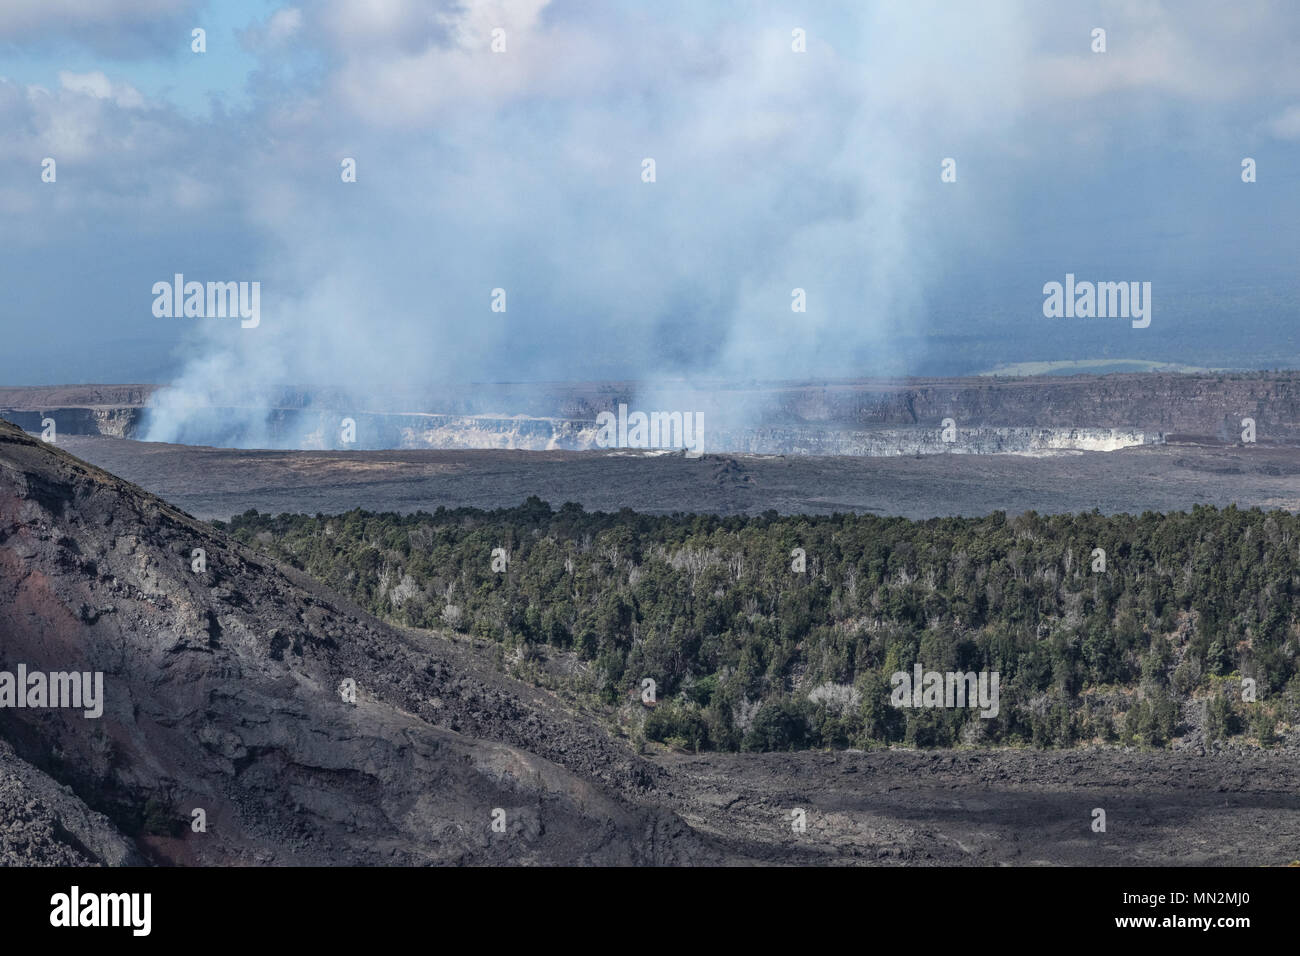 Close up view from Kilauea Iki Trailhead of Kilauea Caldera before Spring 2018 eruption - Stock Image